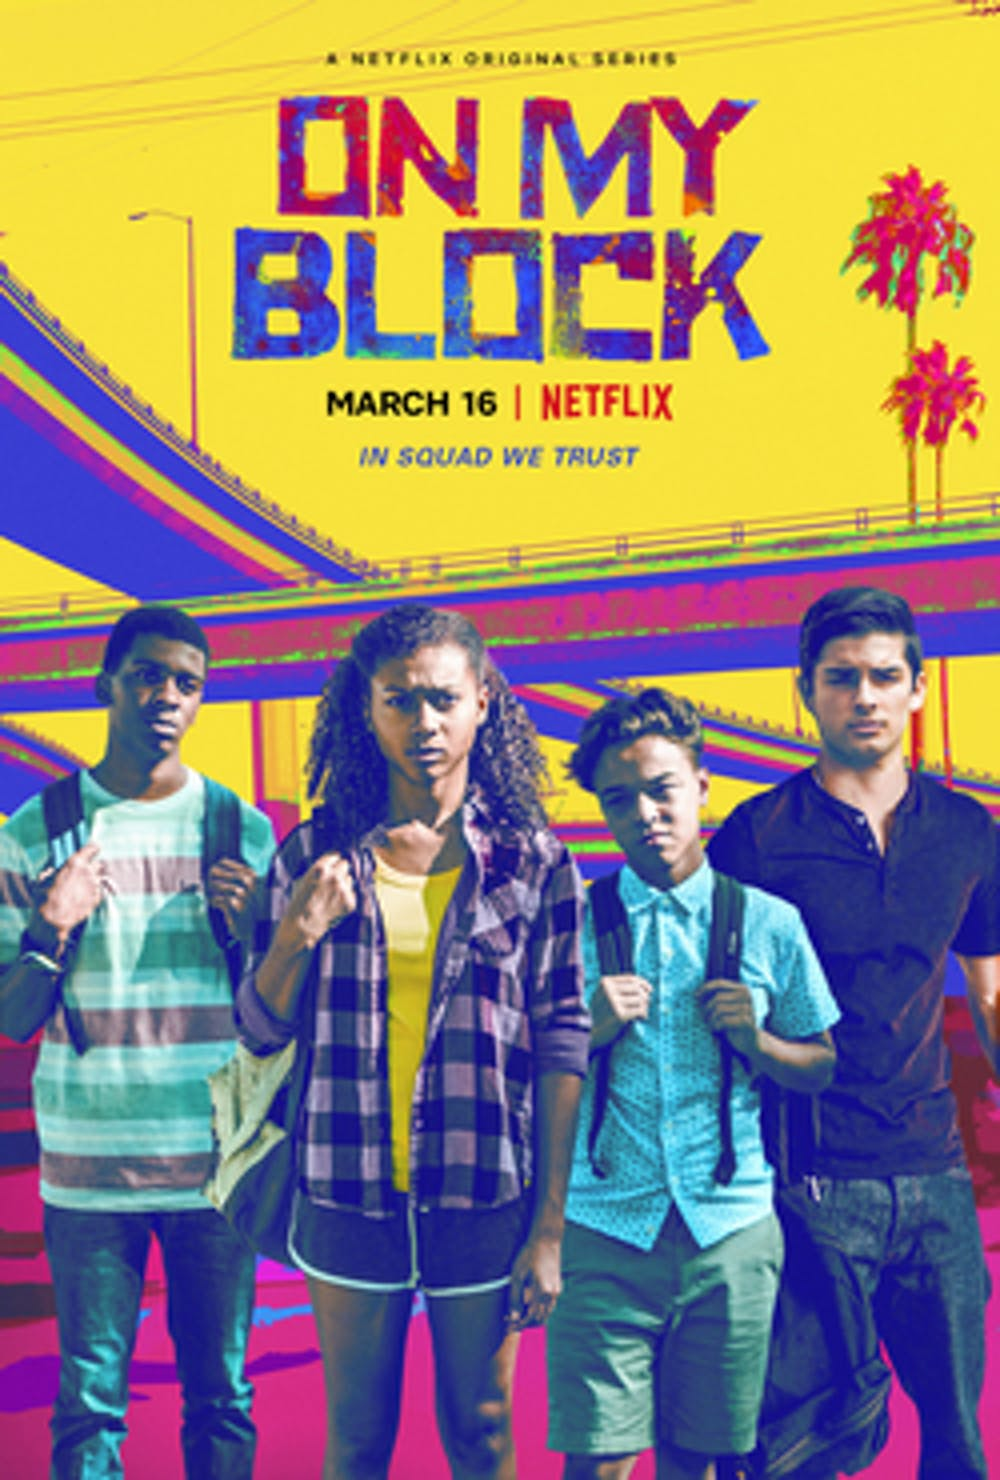 60d7cb1e356 On My Block  stirs up emotions with season premiere